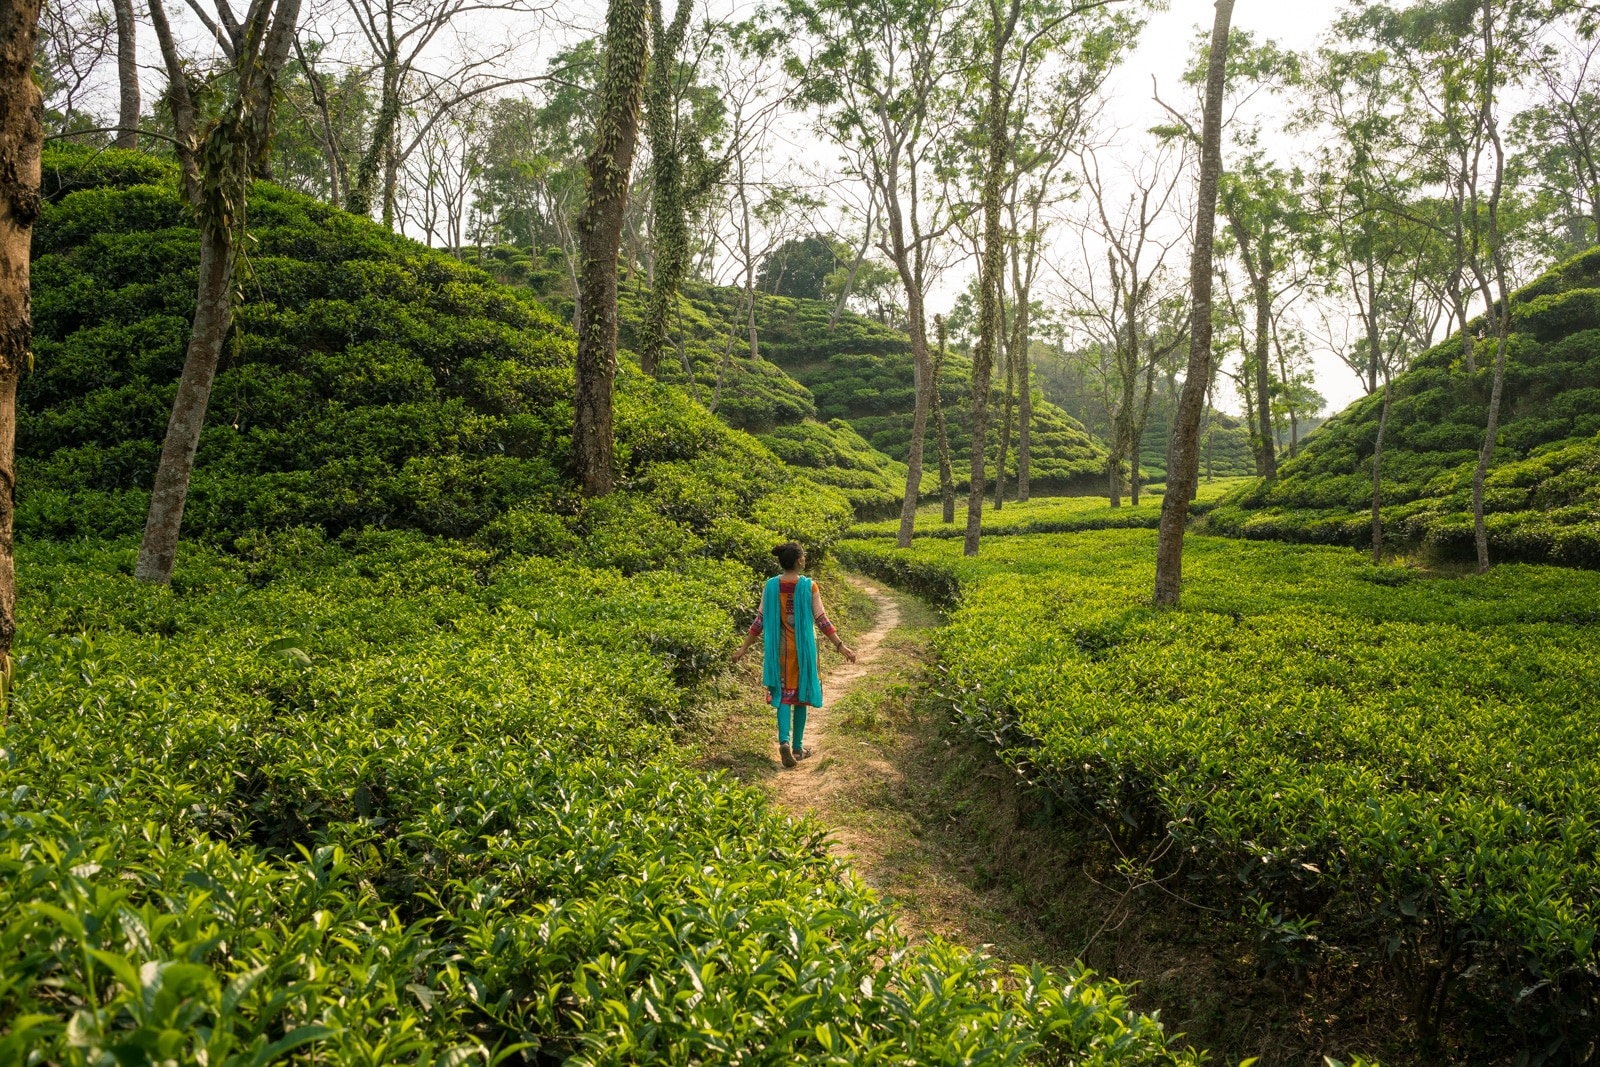 Guide to solo female travel in Bangladesh - Lost With Purpose travel blog